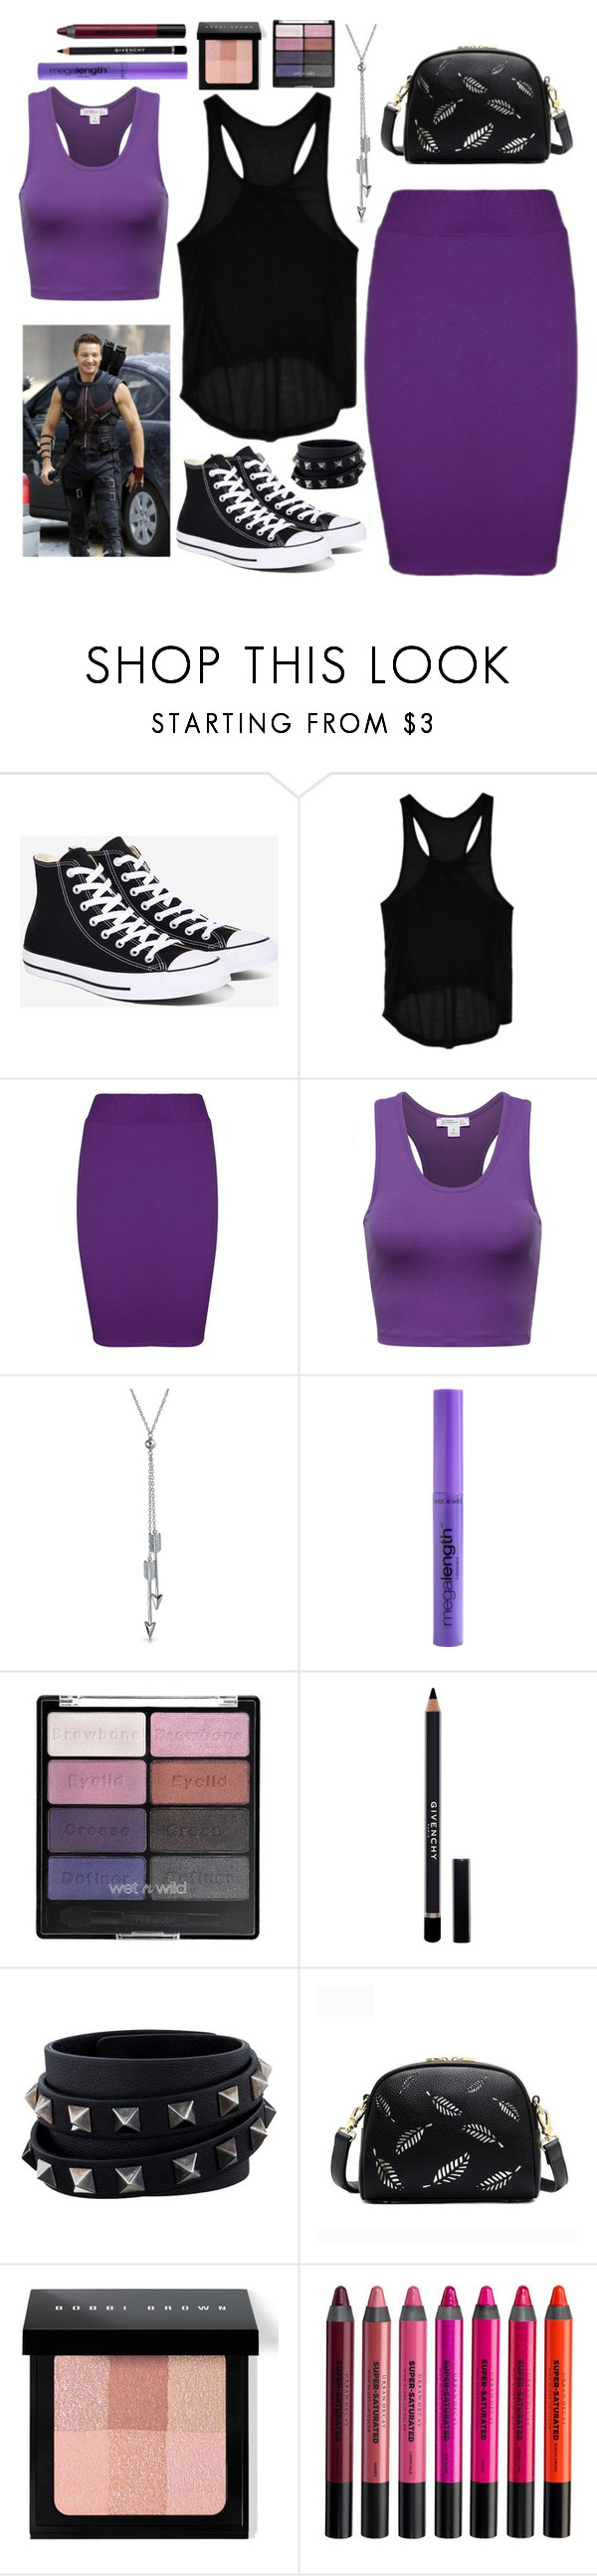 """Hawkeye"" by meeshtell ❤ liked on Polyvore featuring Converse, Go Green M by M, Bling Jewelry, Givenchy, Valentino, Bobbi Brown Cosmetics and Urban Decay"